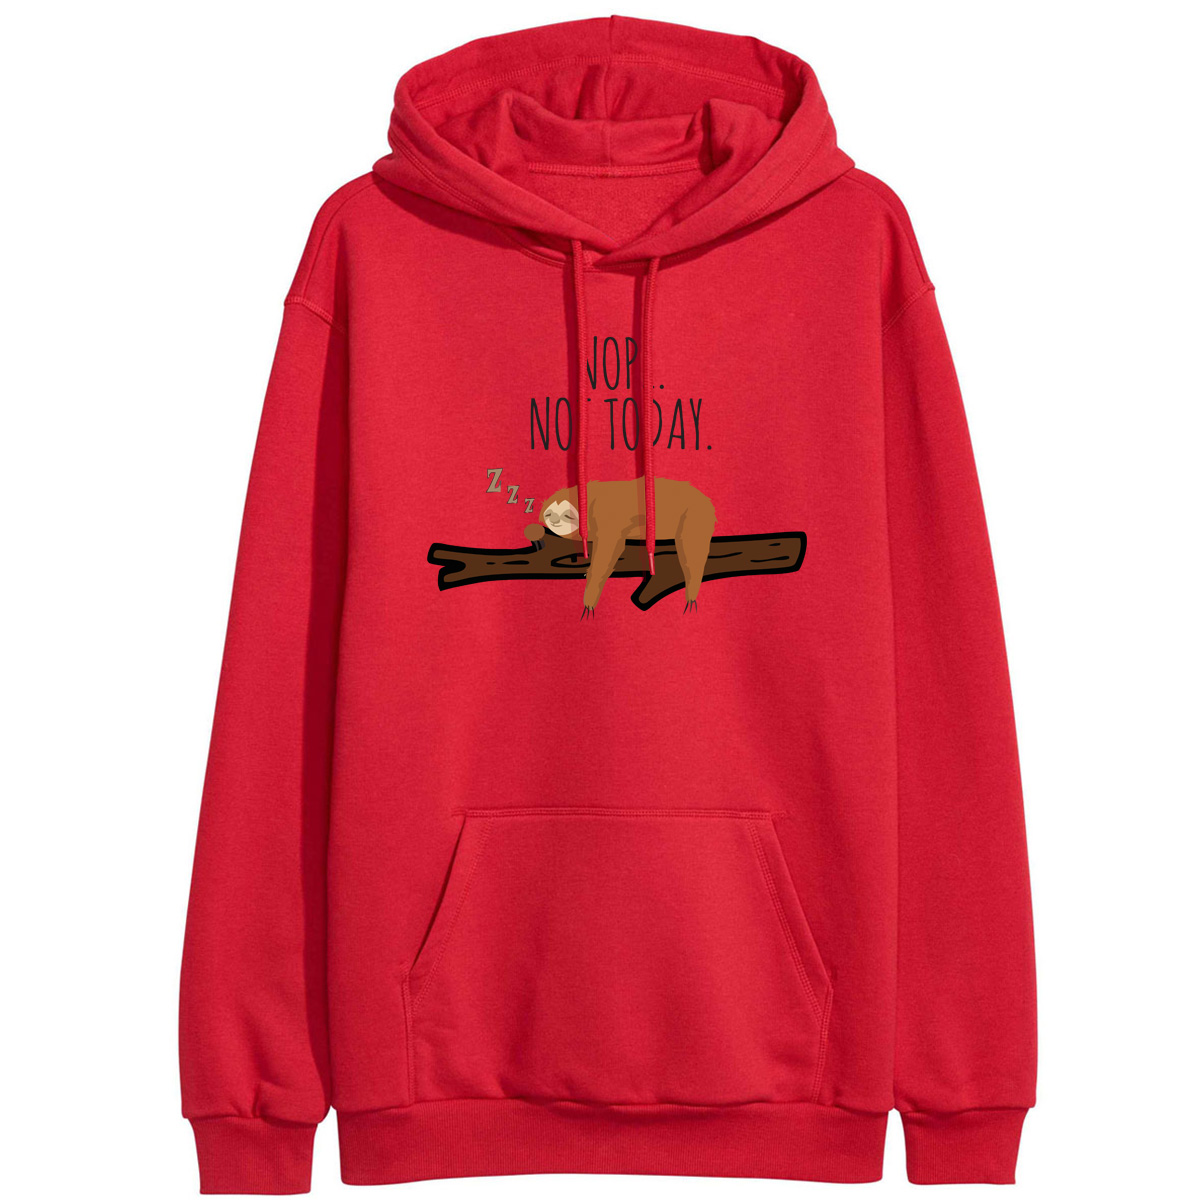 Womens Casual Nope Not Today Pullover Sweatshirt